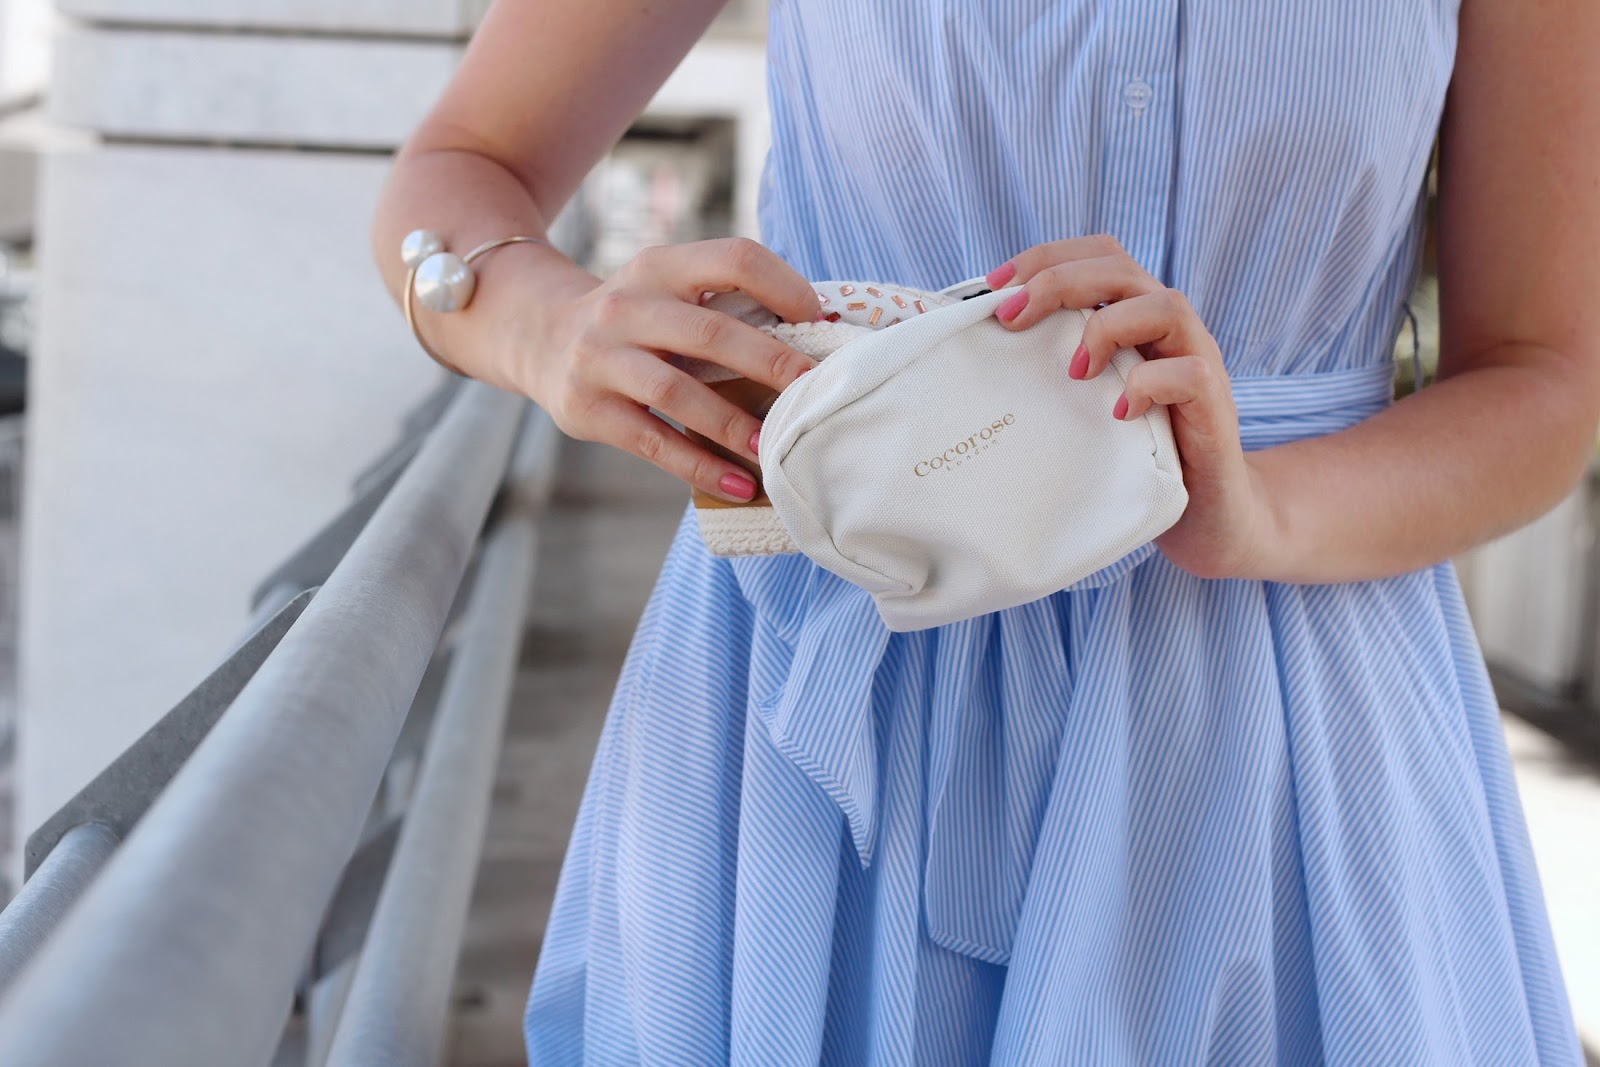 fashion style blogger outfit ootd italian girl italy trend vogue glamour pescara new look bag chic wish dress stripes blue cookeries london flats ballet shoes